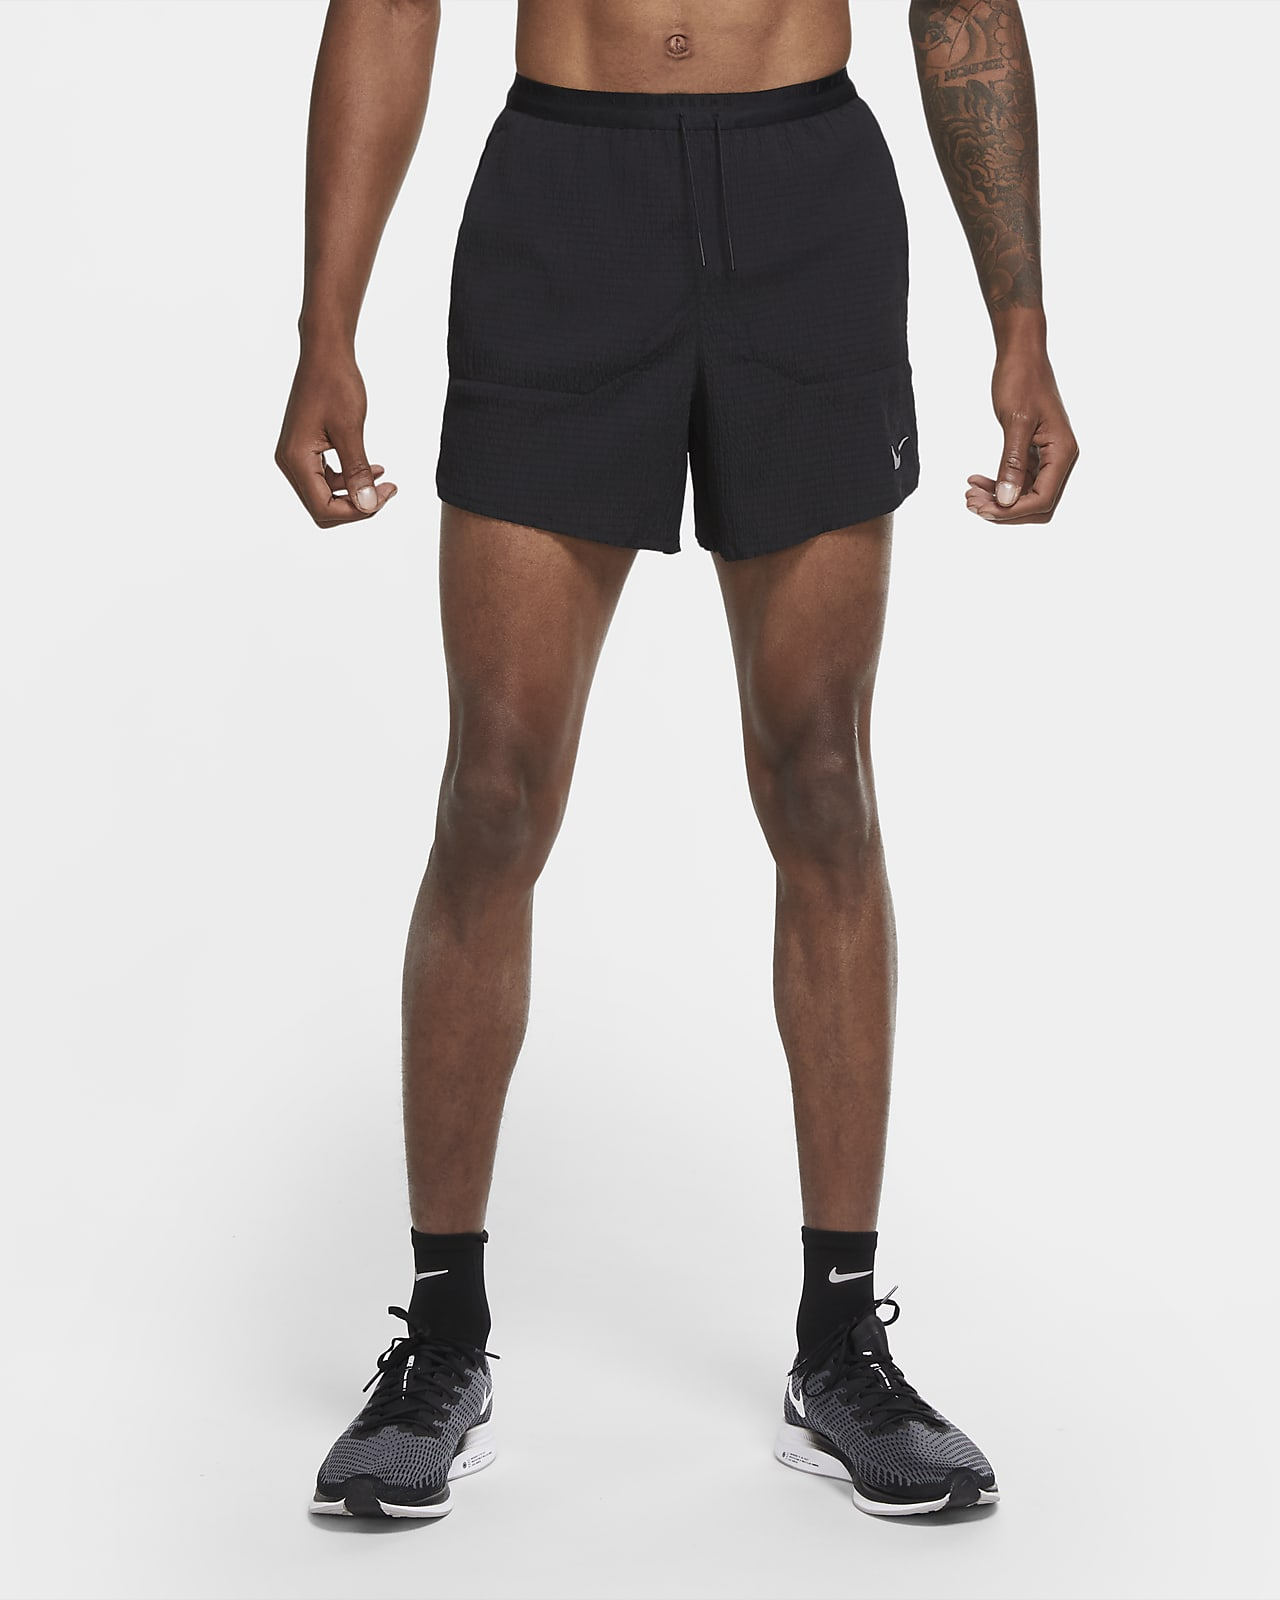 Nike Flex Stride Run Division Men's Running Shorts